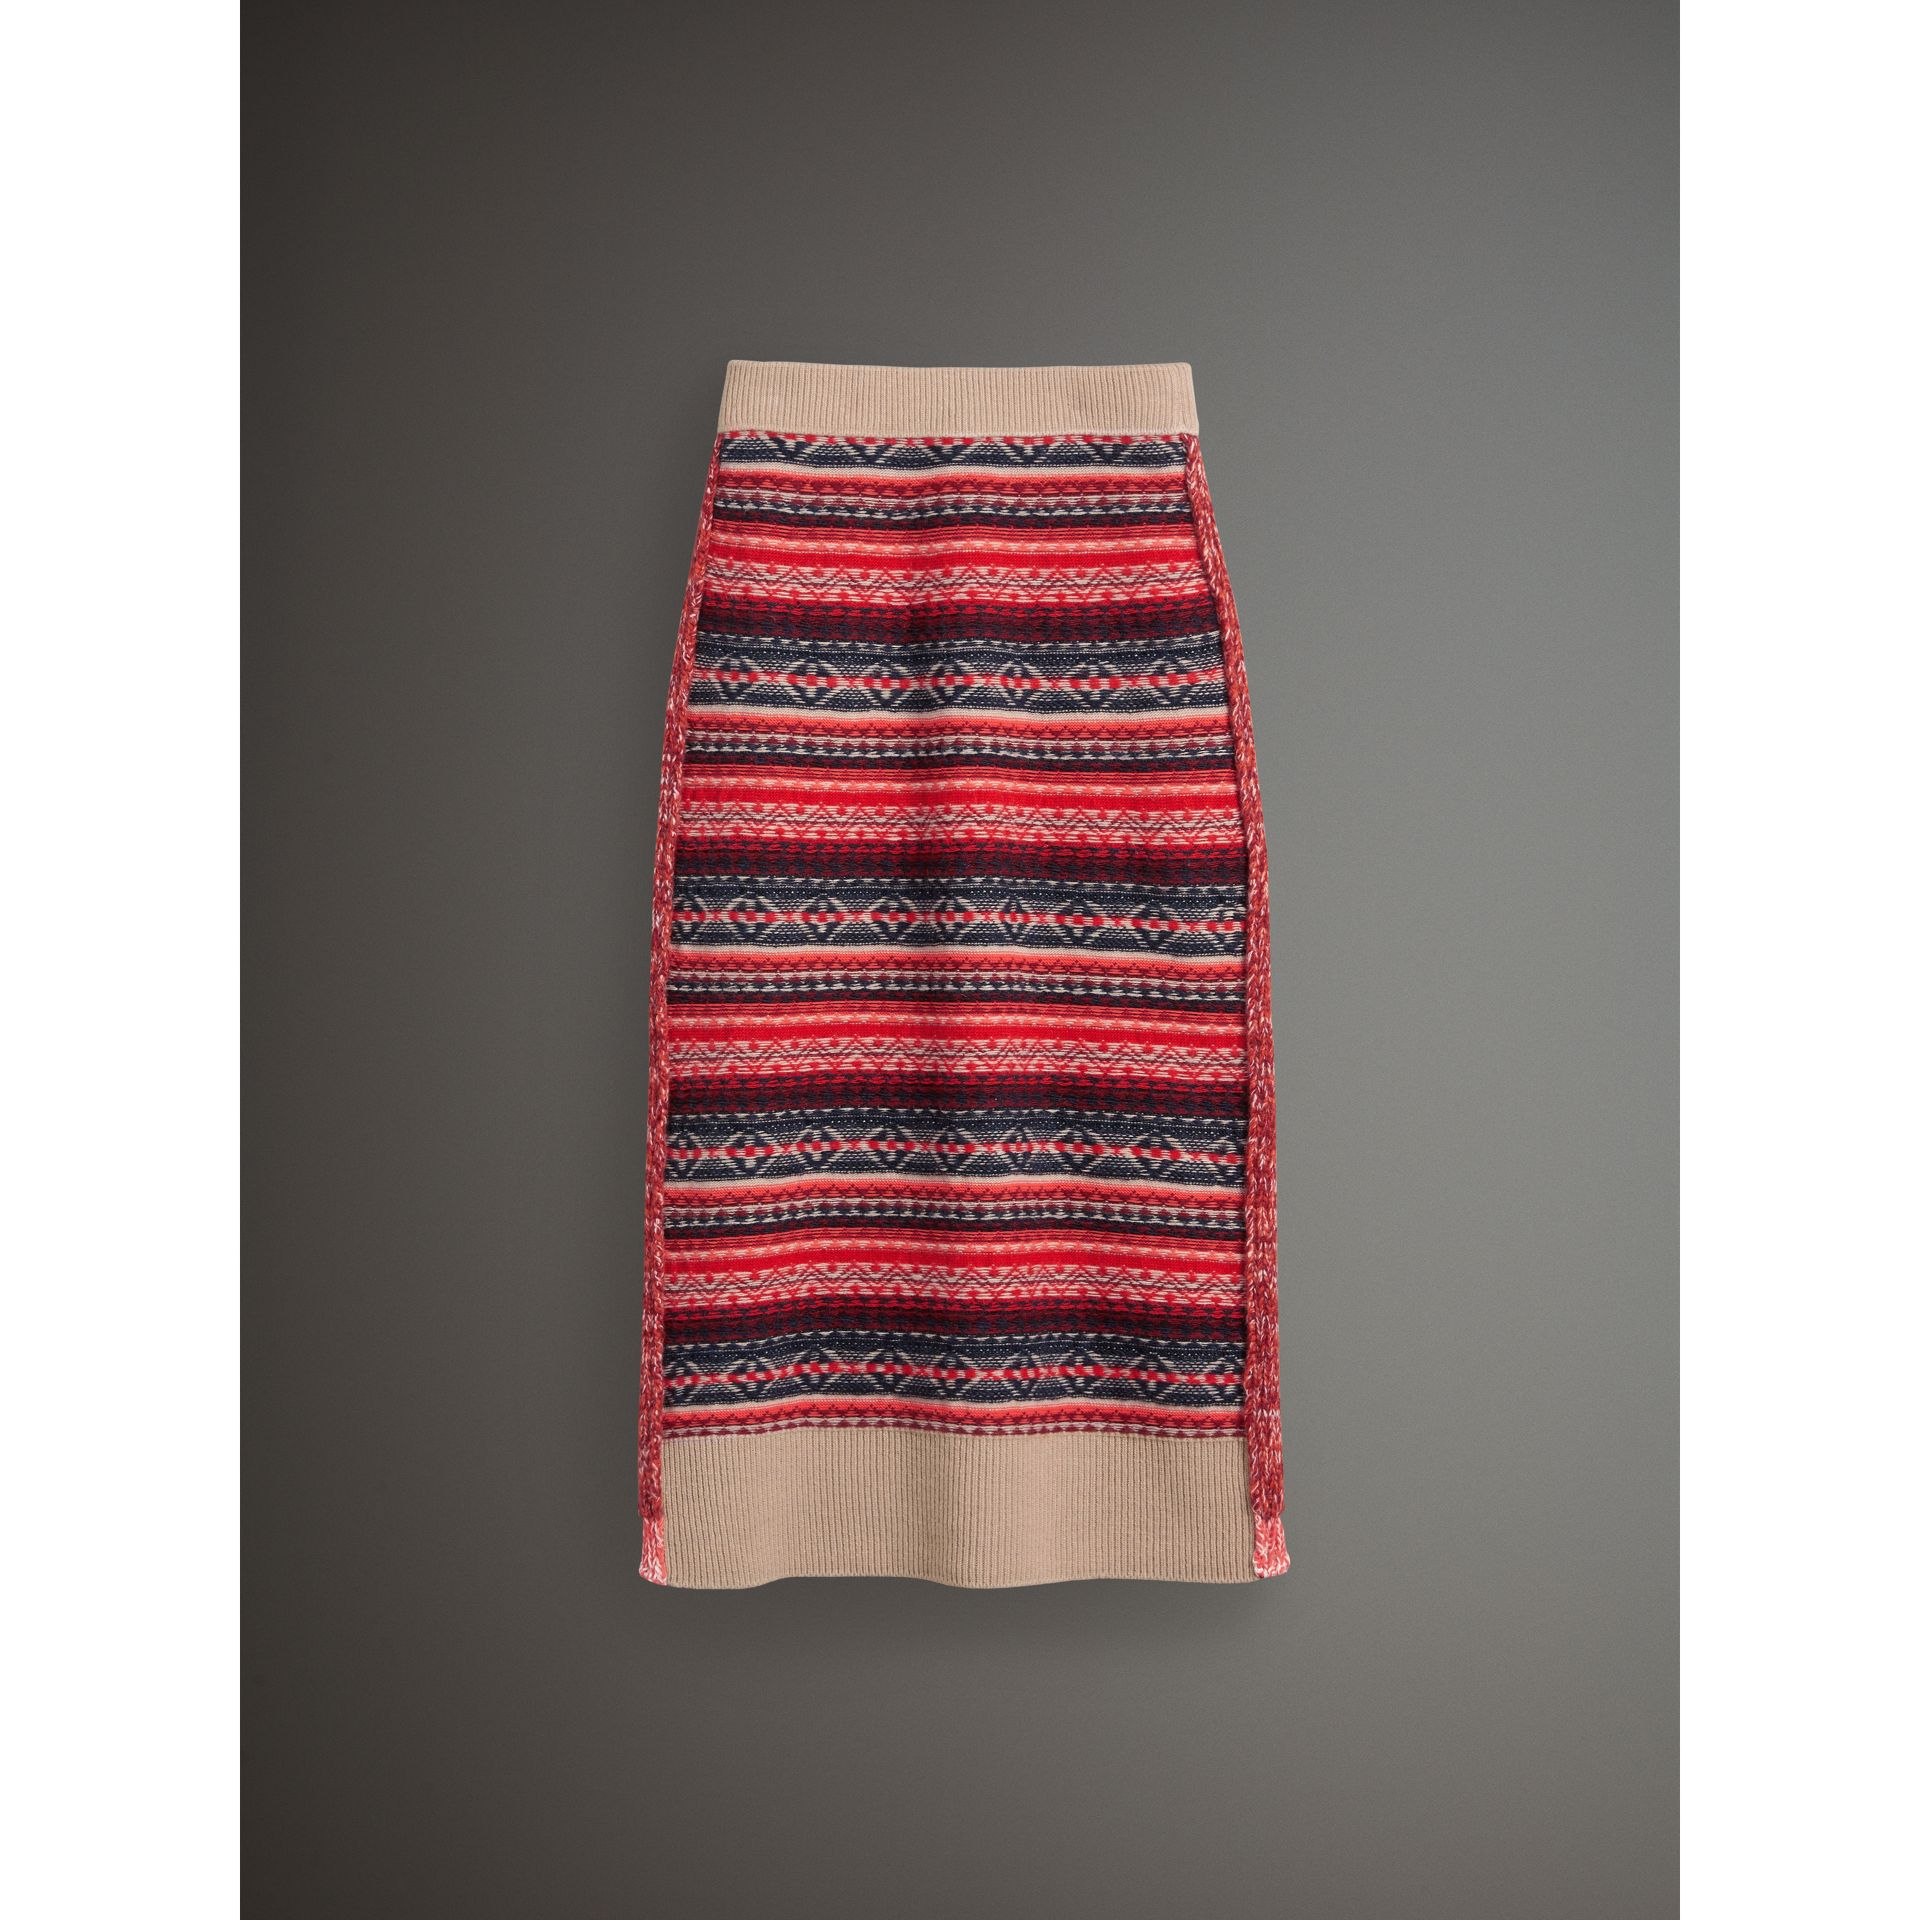 Fair Isle and Cable Knit Wool Cashmere Blend Skirt in Multicolour - Women | Burberry Hong Kong - gallery image 4